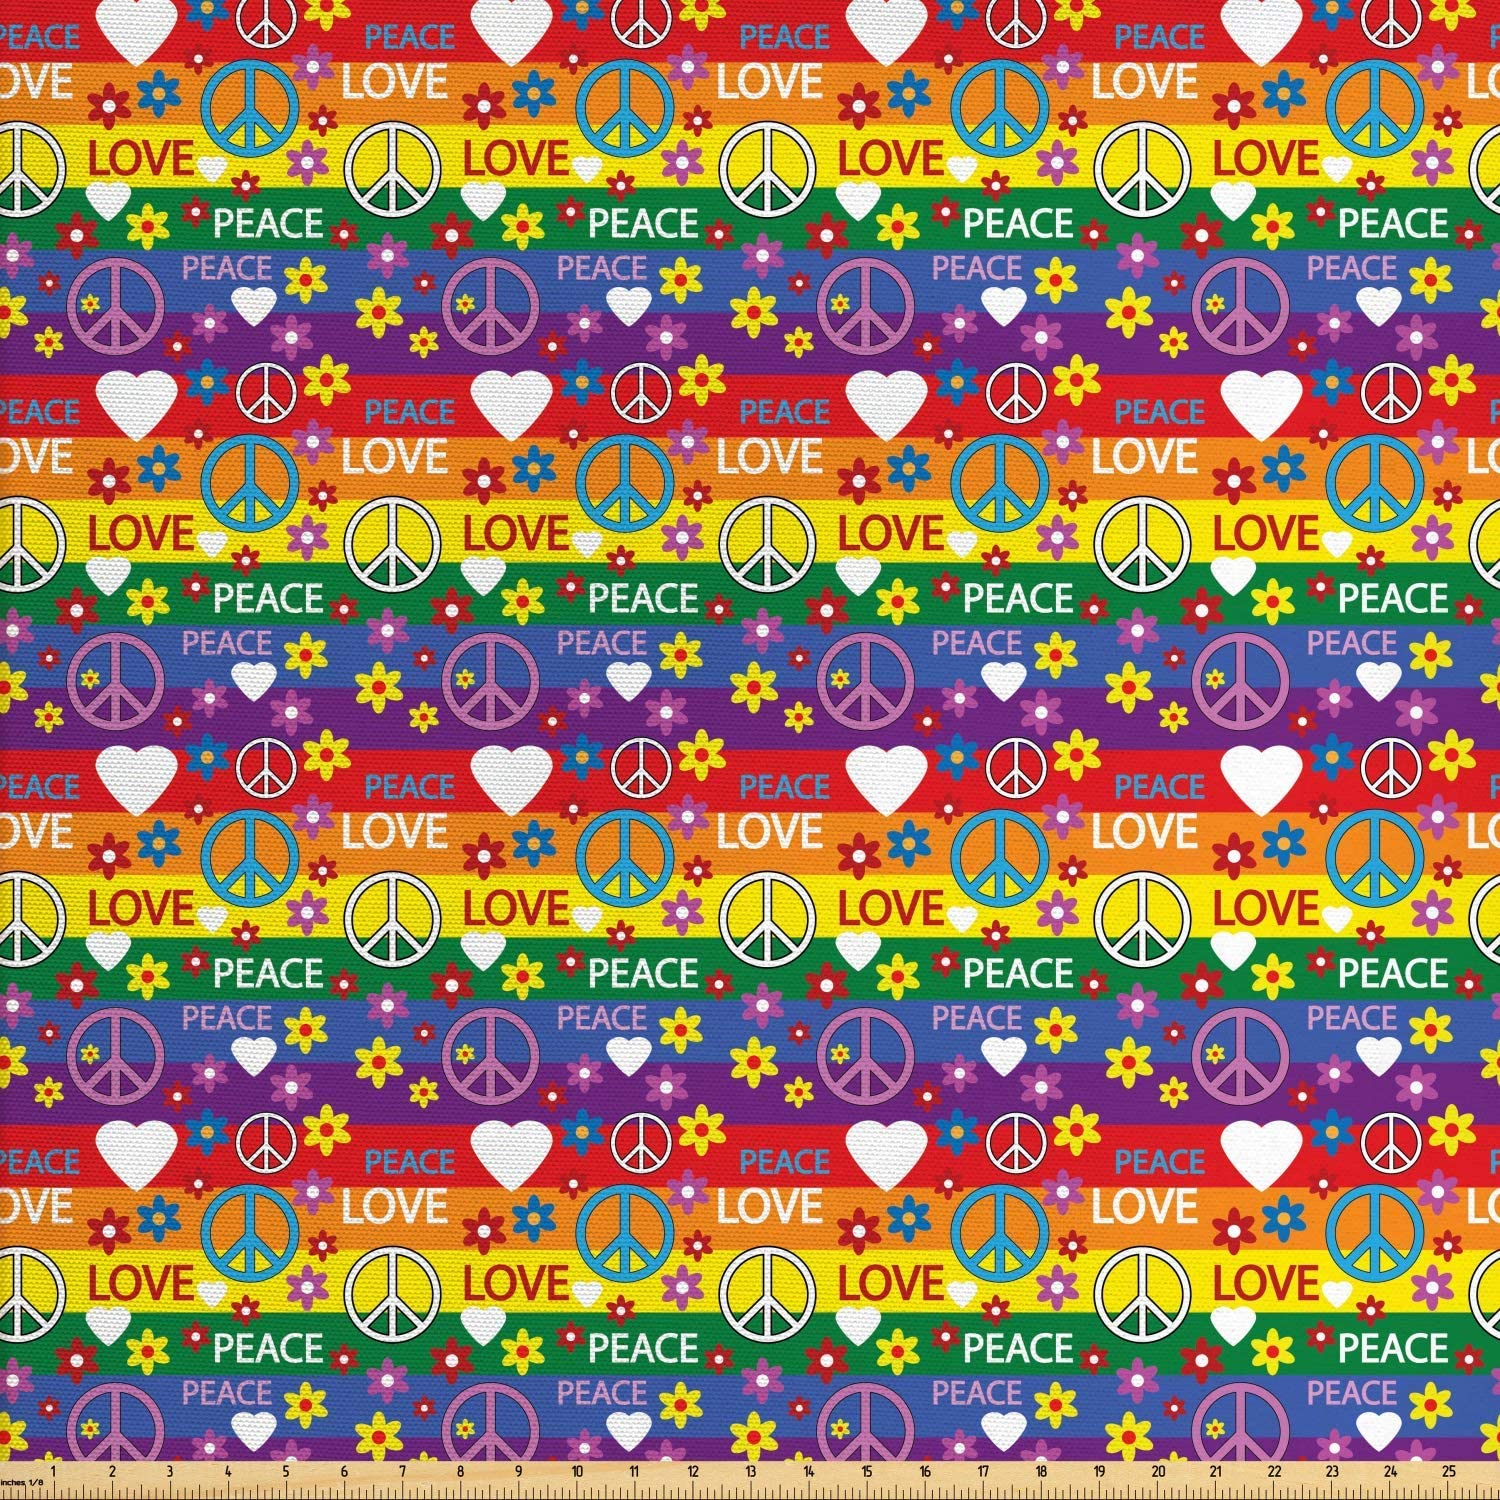 Ambesonne Groovy Fabric by The Yard, Heart Peace Flower Power Political Hippie Cheerful Colors Festival Joyful, Decorative Fabric for Upholstery and Home Accents, 2 Yards, Rainbow Colors